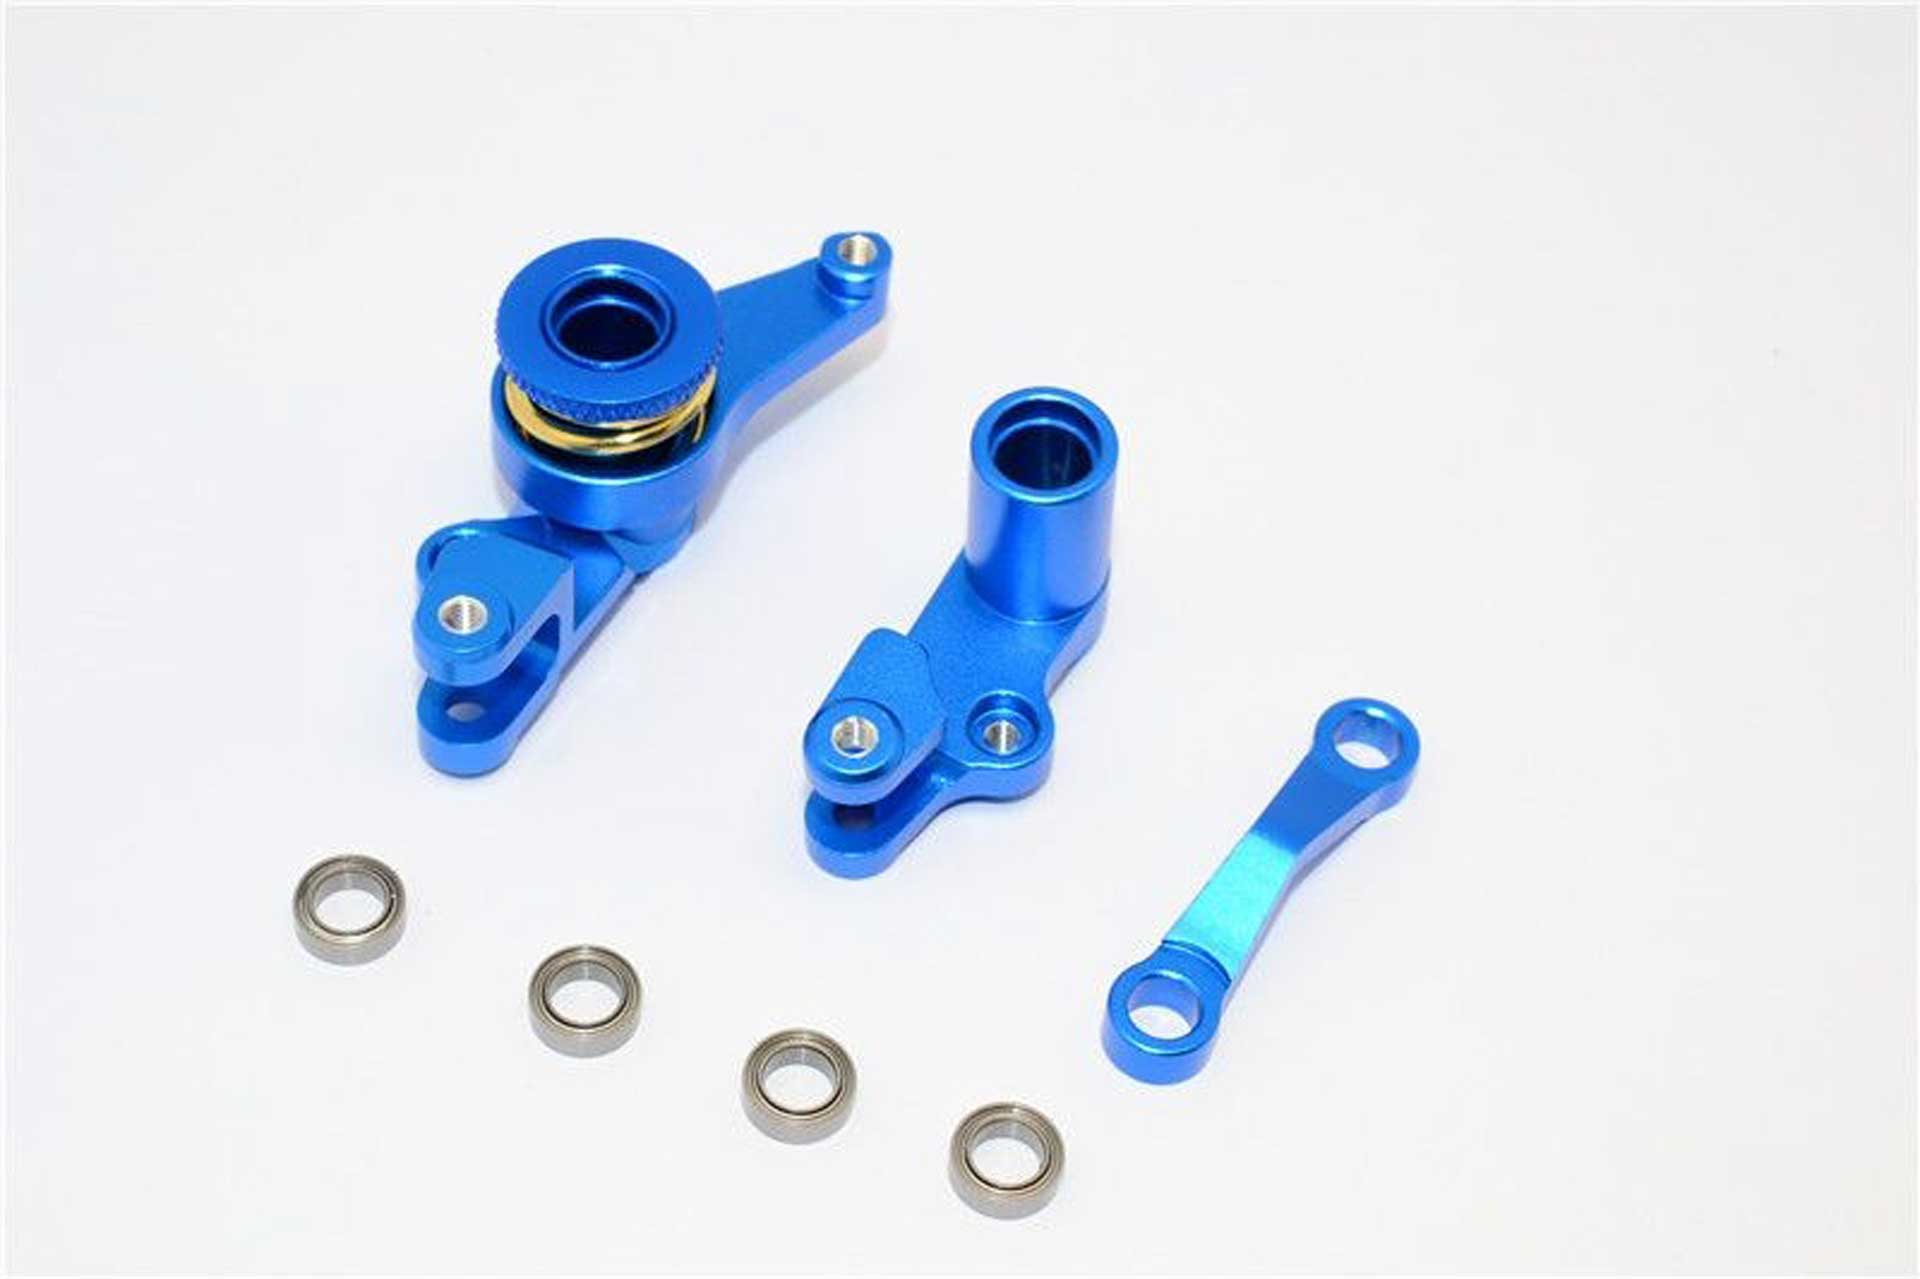 ALLOY STEERING ASSEMBLY WITH BEARINGS - 1SET blue GPM TRX 1/10 SLASH 4x4 RALLY STAMPEDE/RUSTL